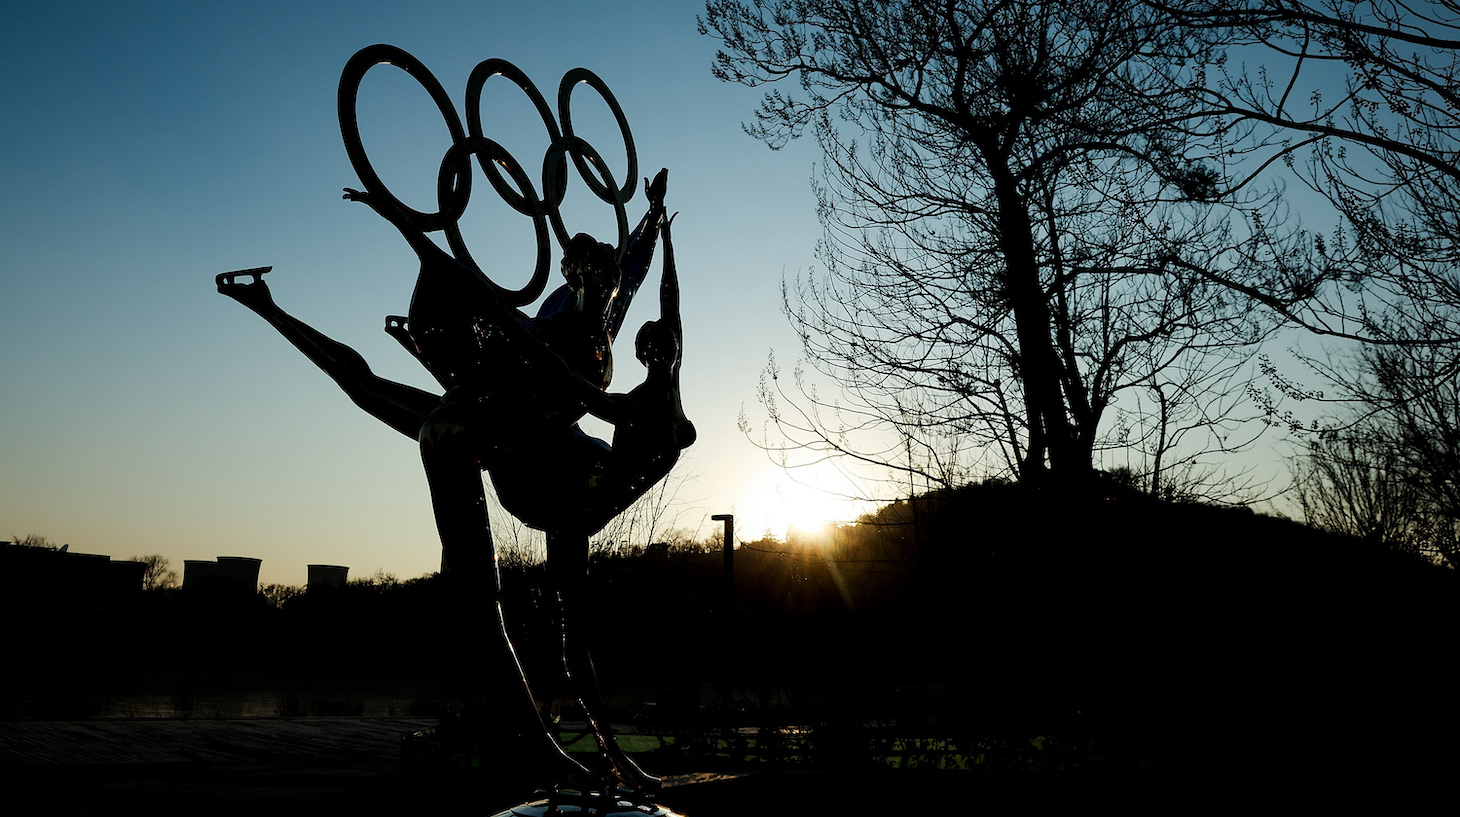 BEIJING, CHINA - DECEMBER 16: A sculpture depicts Olympic figure skaters for the 2022 Beijing Winter Olympics at Shougang Park on December 16, 2020 in Beijing, China. The organizing committee introduced the latest progress of the Olympic venues, all competition venues will be completed this year. (Photo by Lintao Zhang/Getty Images)